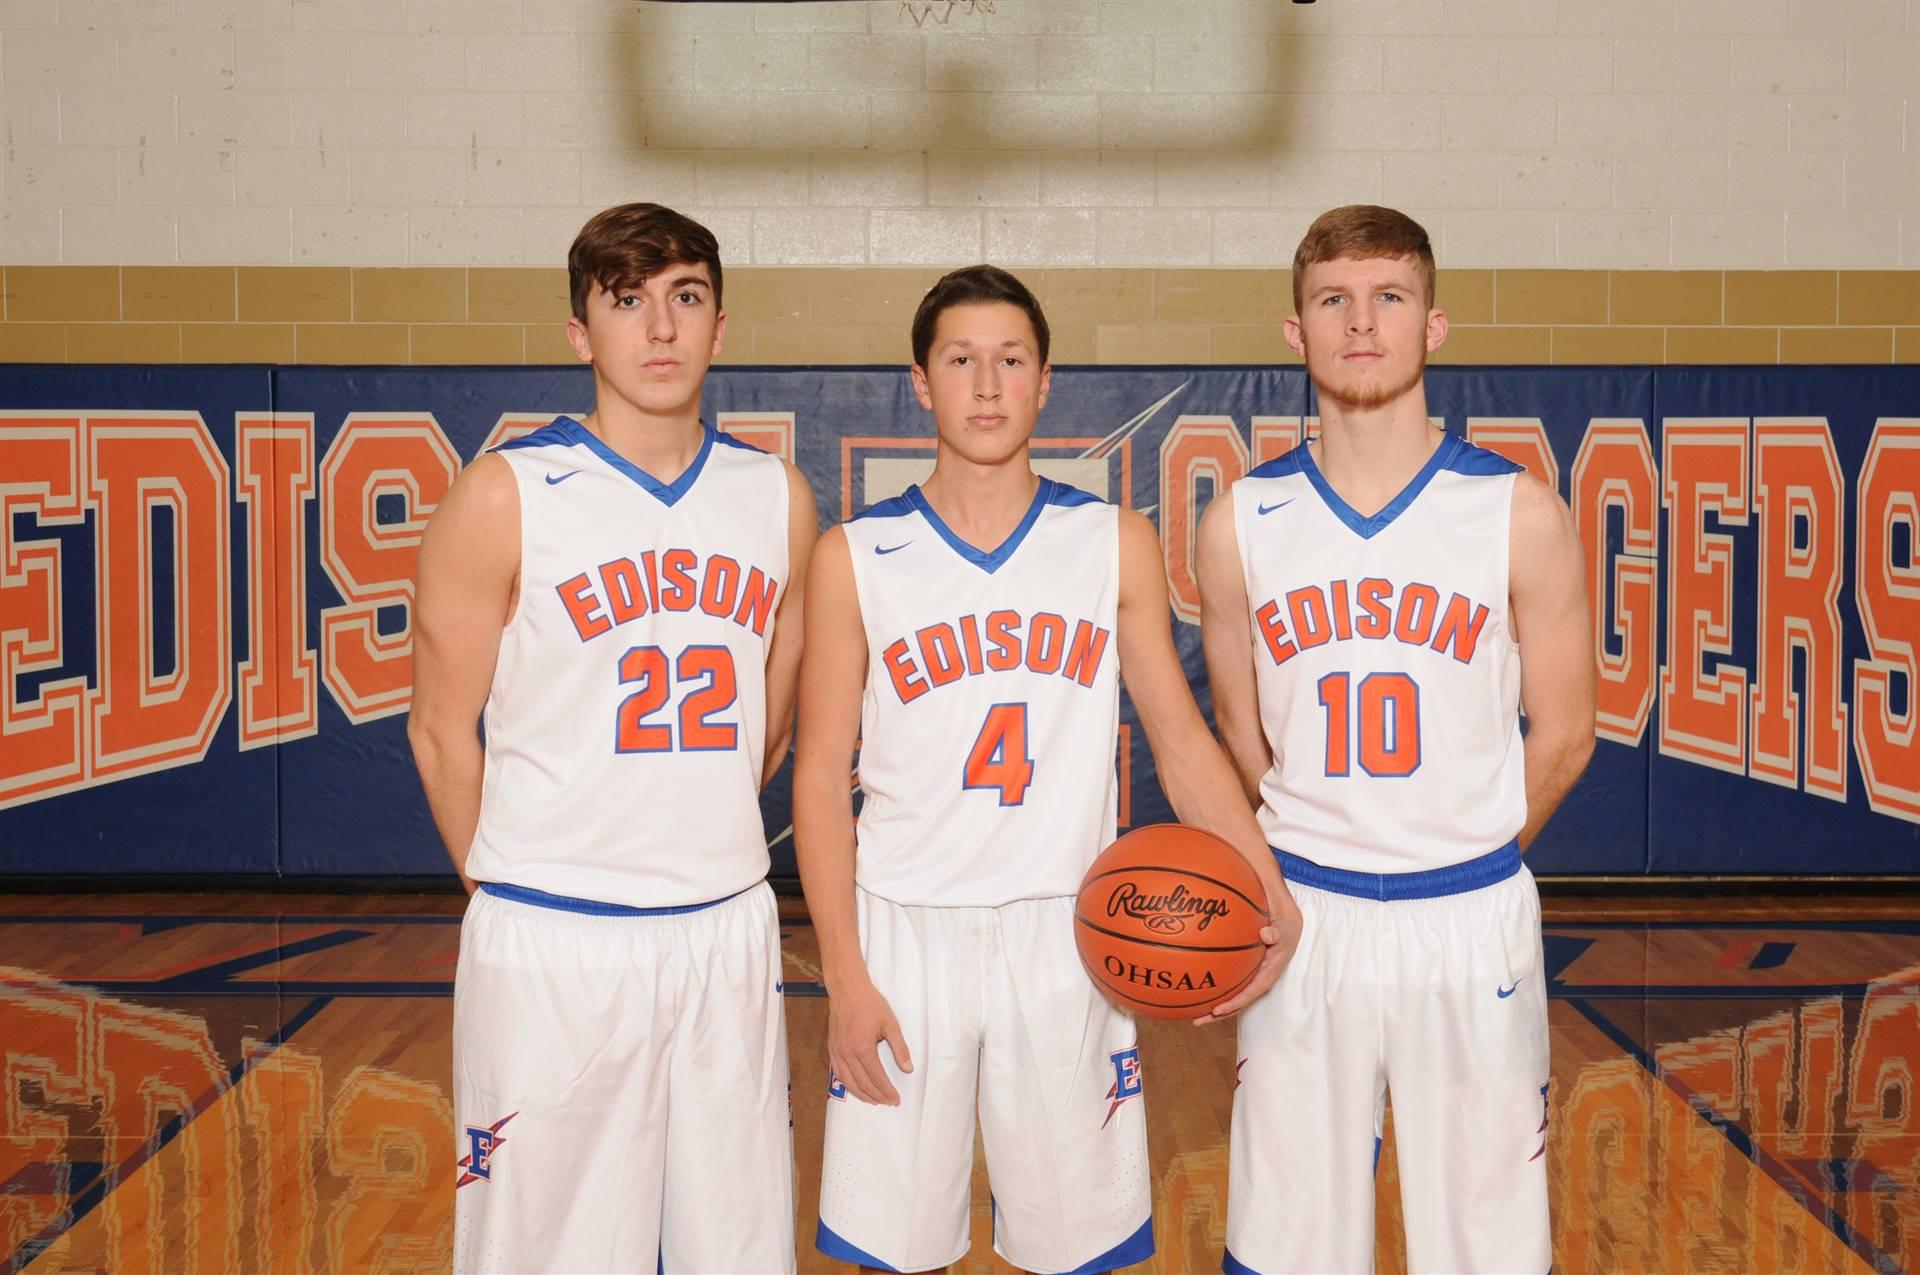 2019 Boys Basketball Seniors